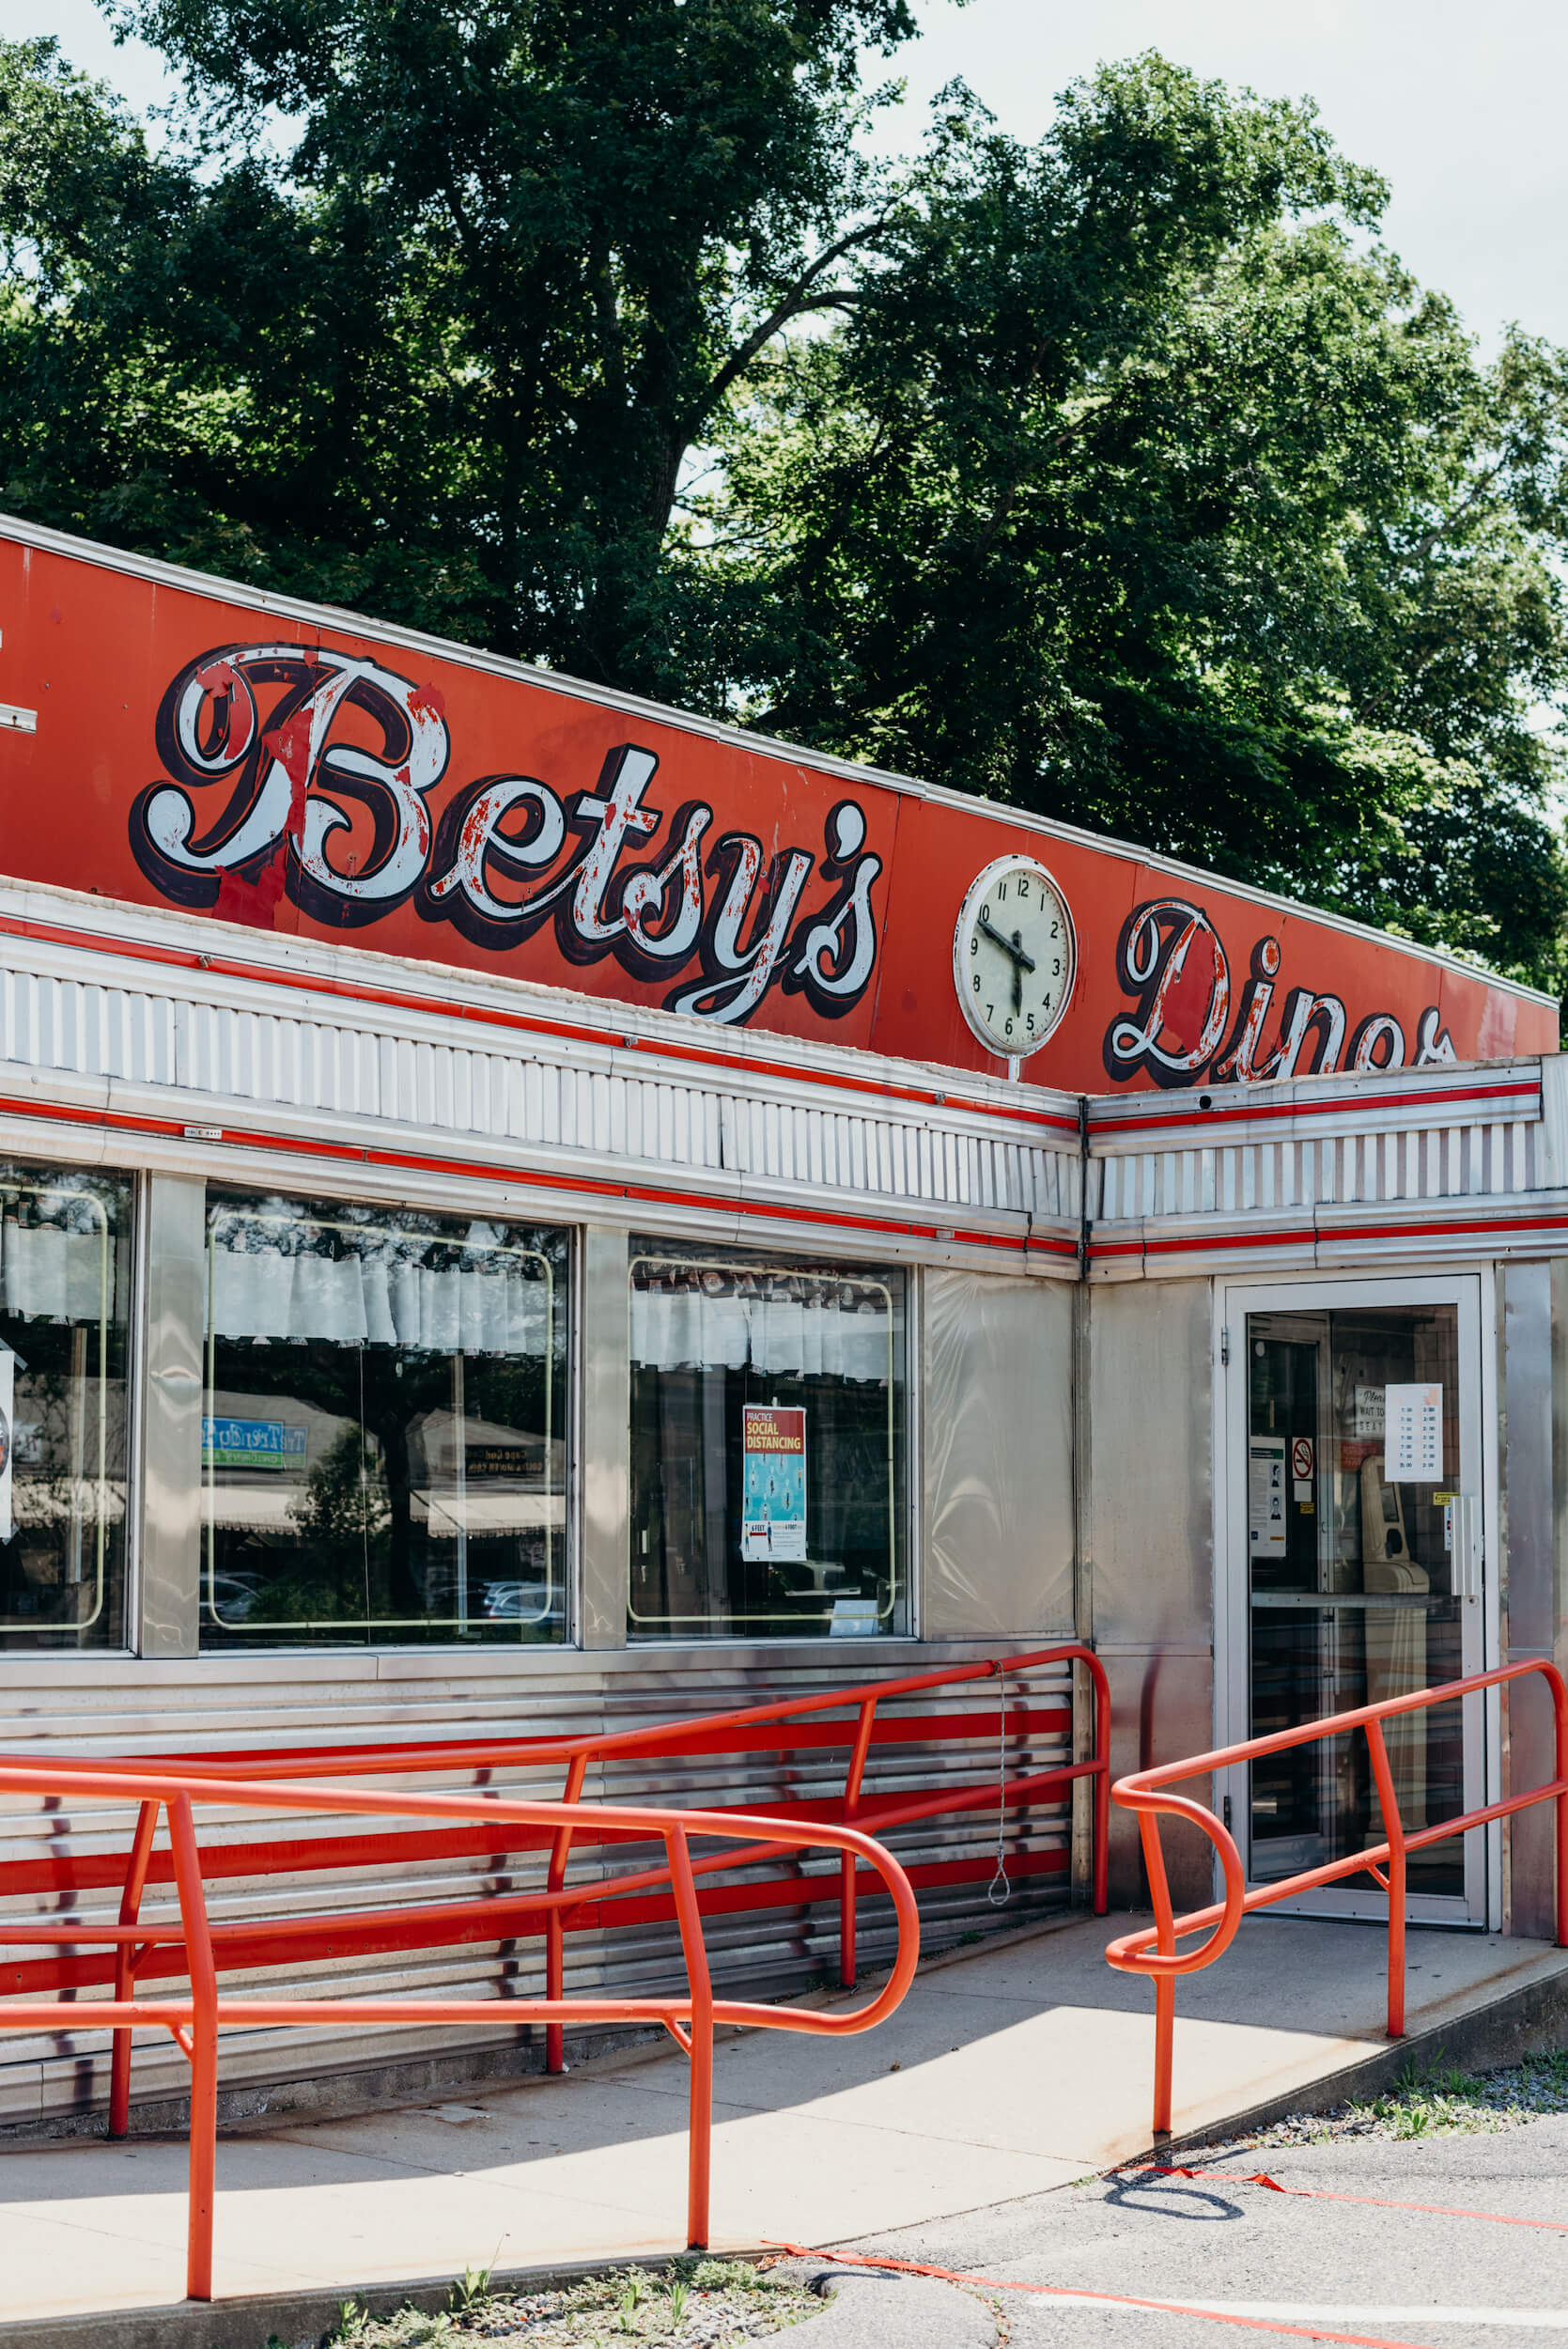 Exterior of Betsy's Diner in Cape Cod, Massachusetts, USA.